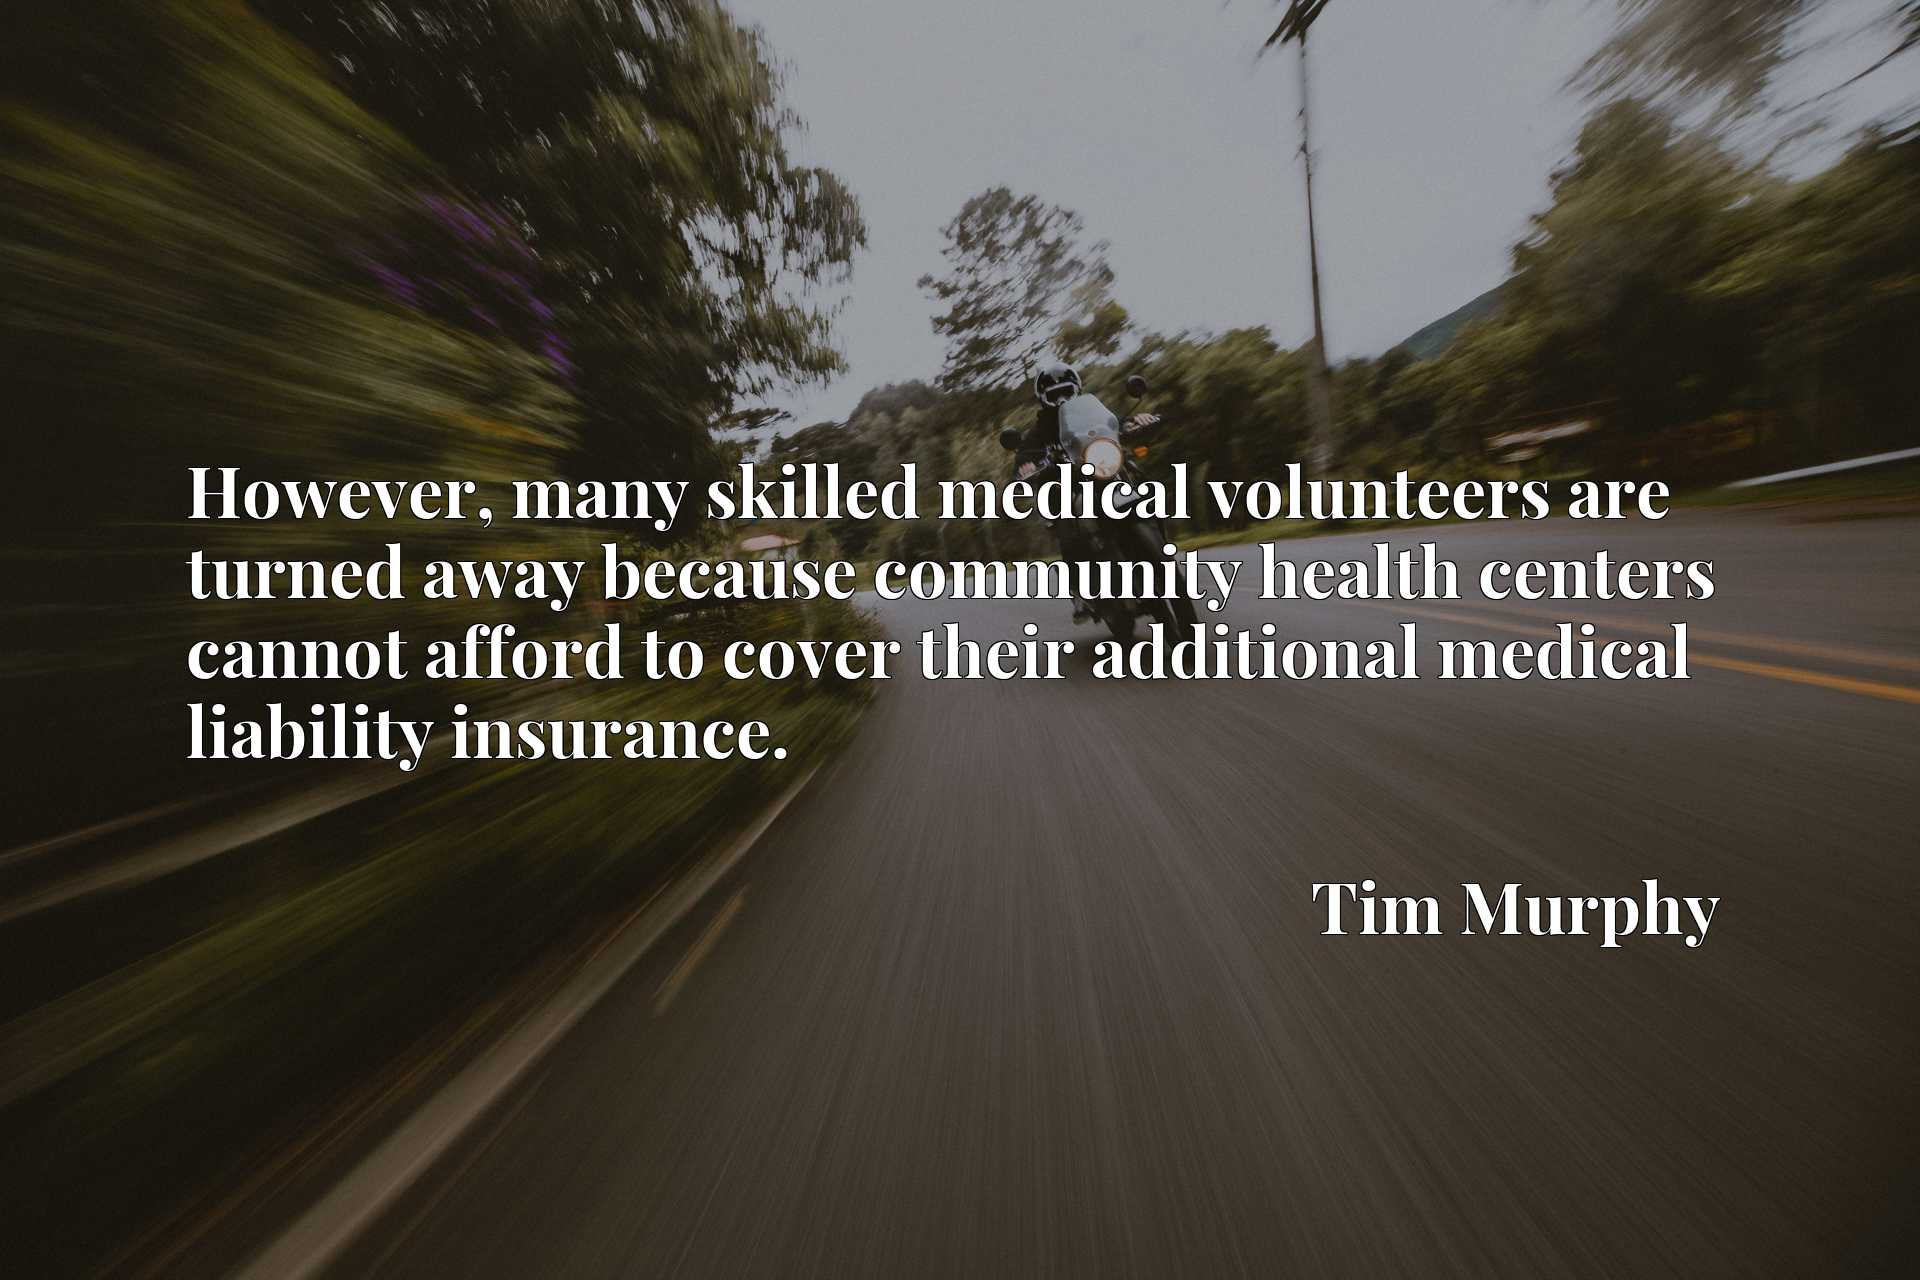 However, many skilled medical volunteers are turned away because community health centers cannot afford to cover their additional medical liability insurance.